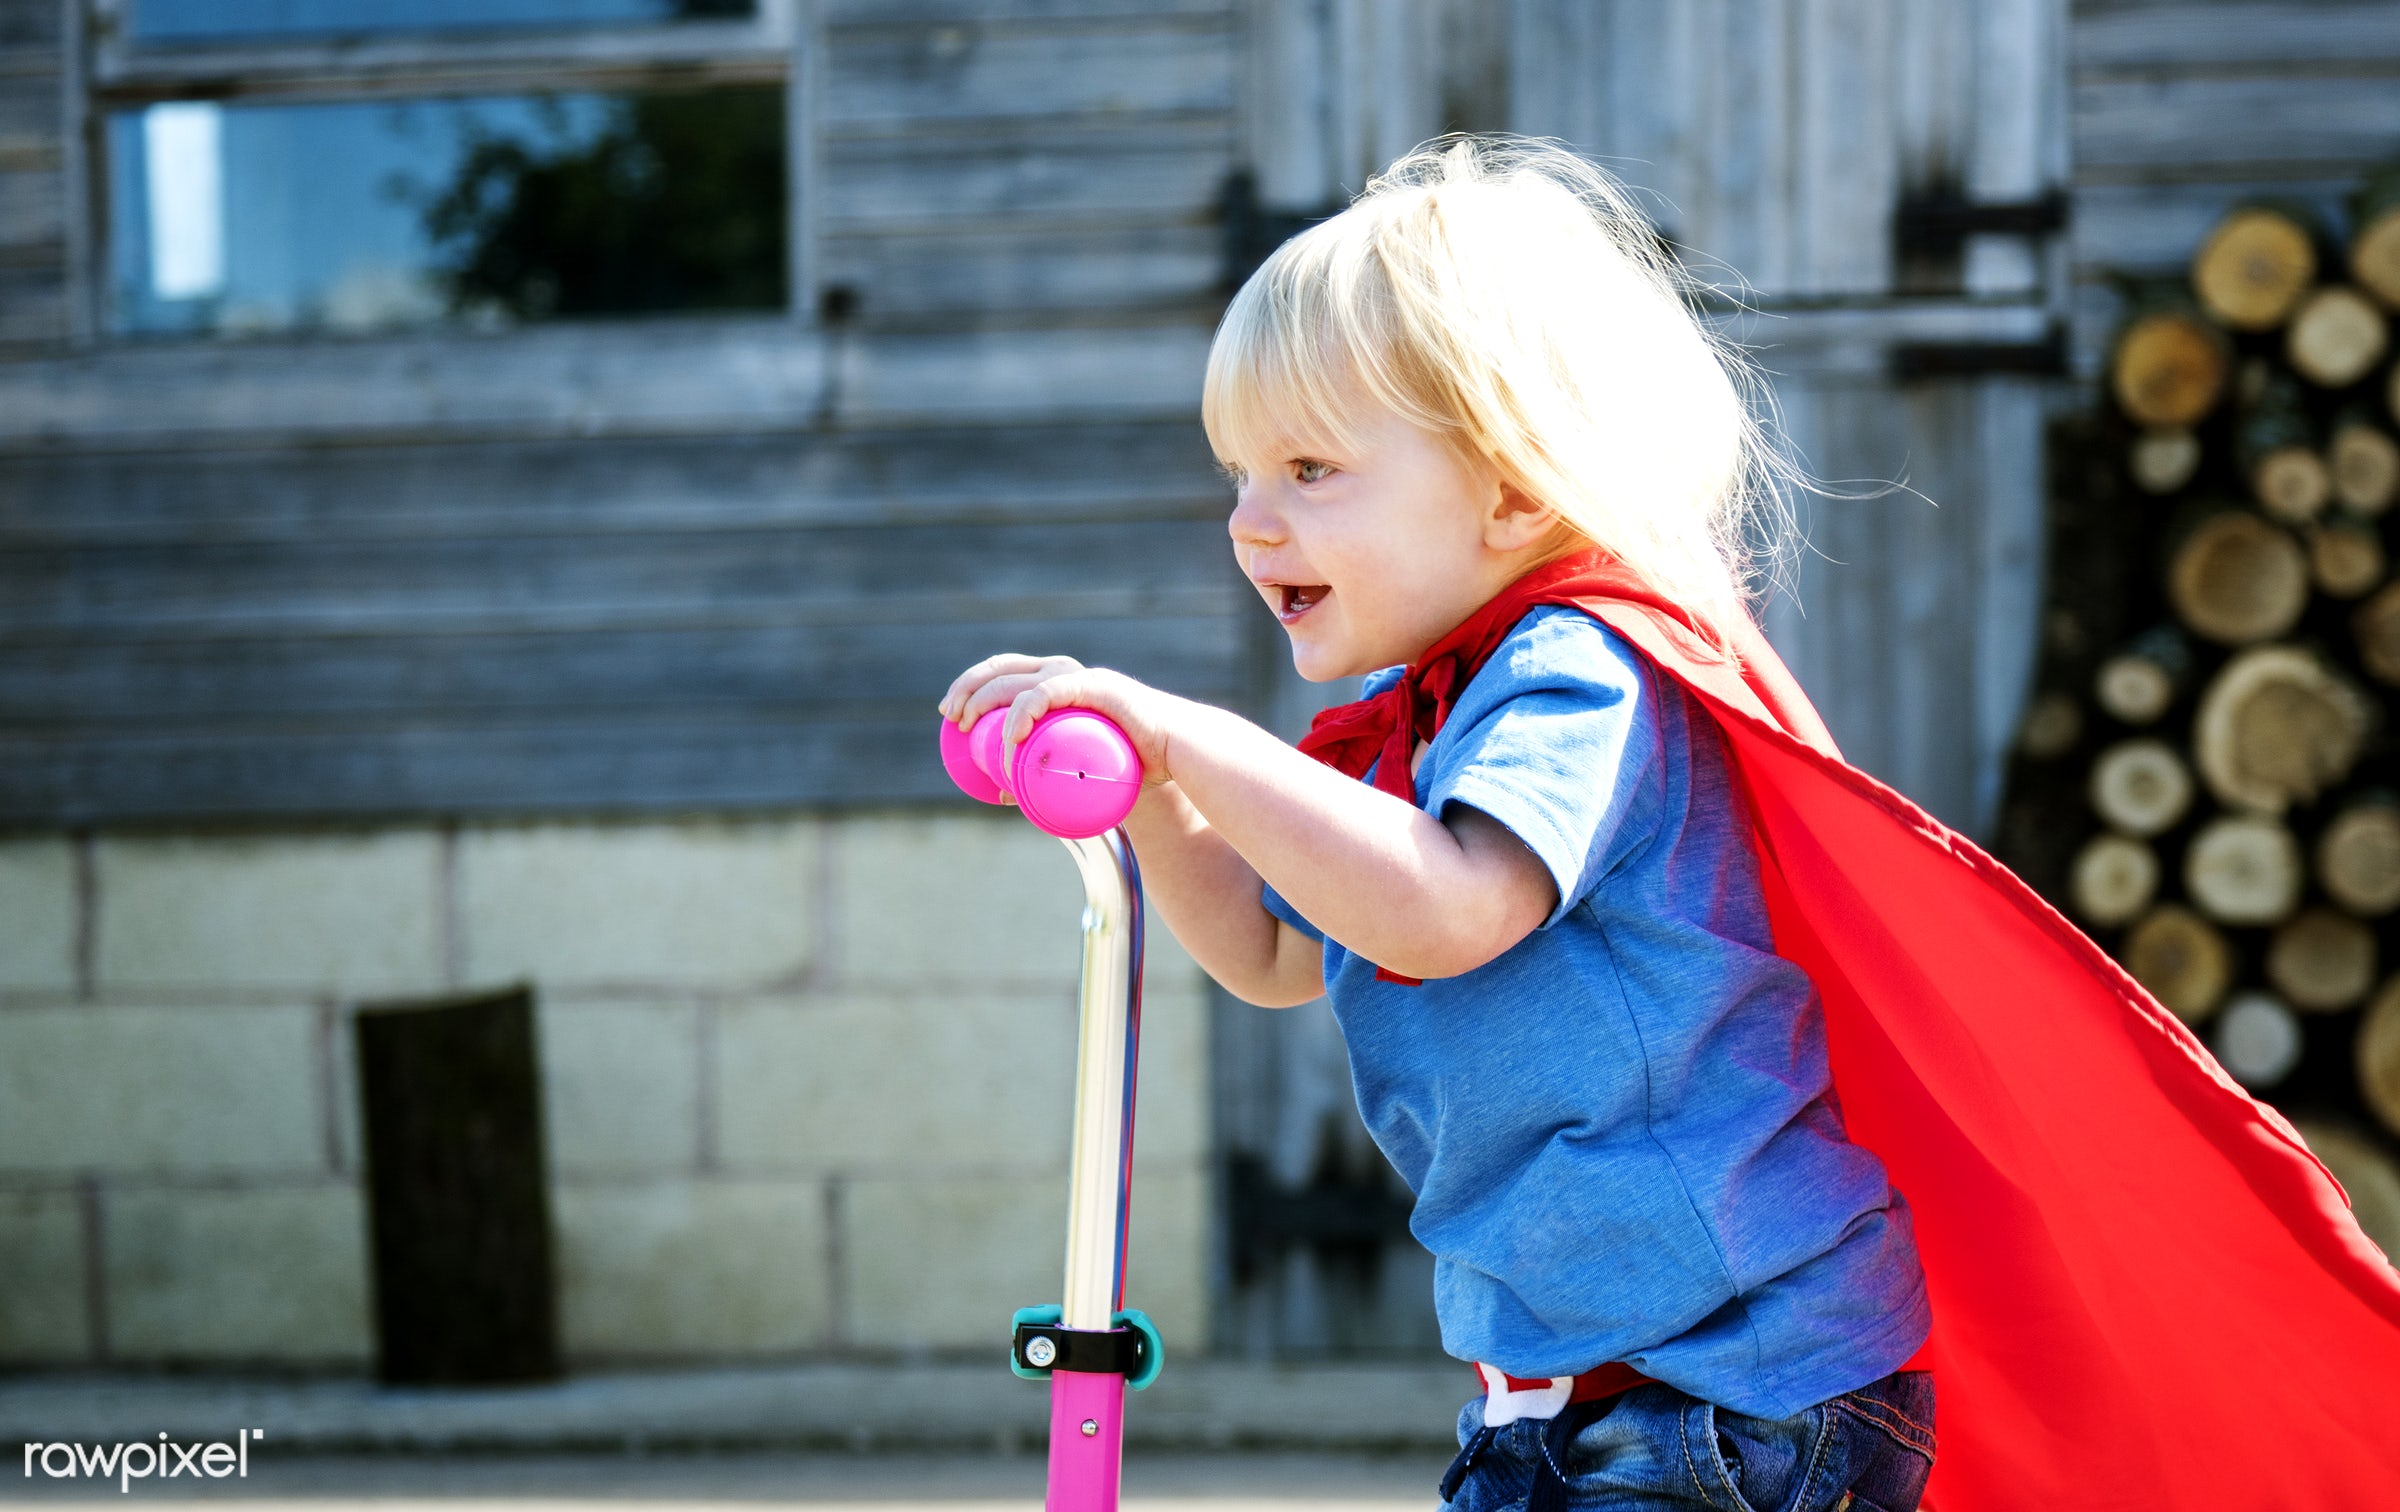 active, activity, adorable, aspirations, boy, brave, cheerful, child, childhood, confidence, costume, cute, determination,...